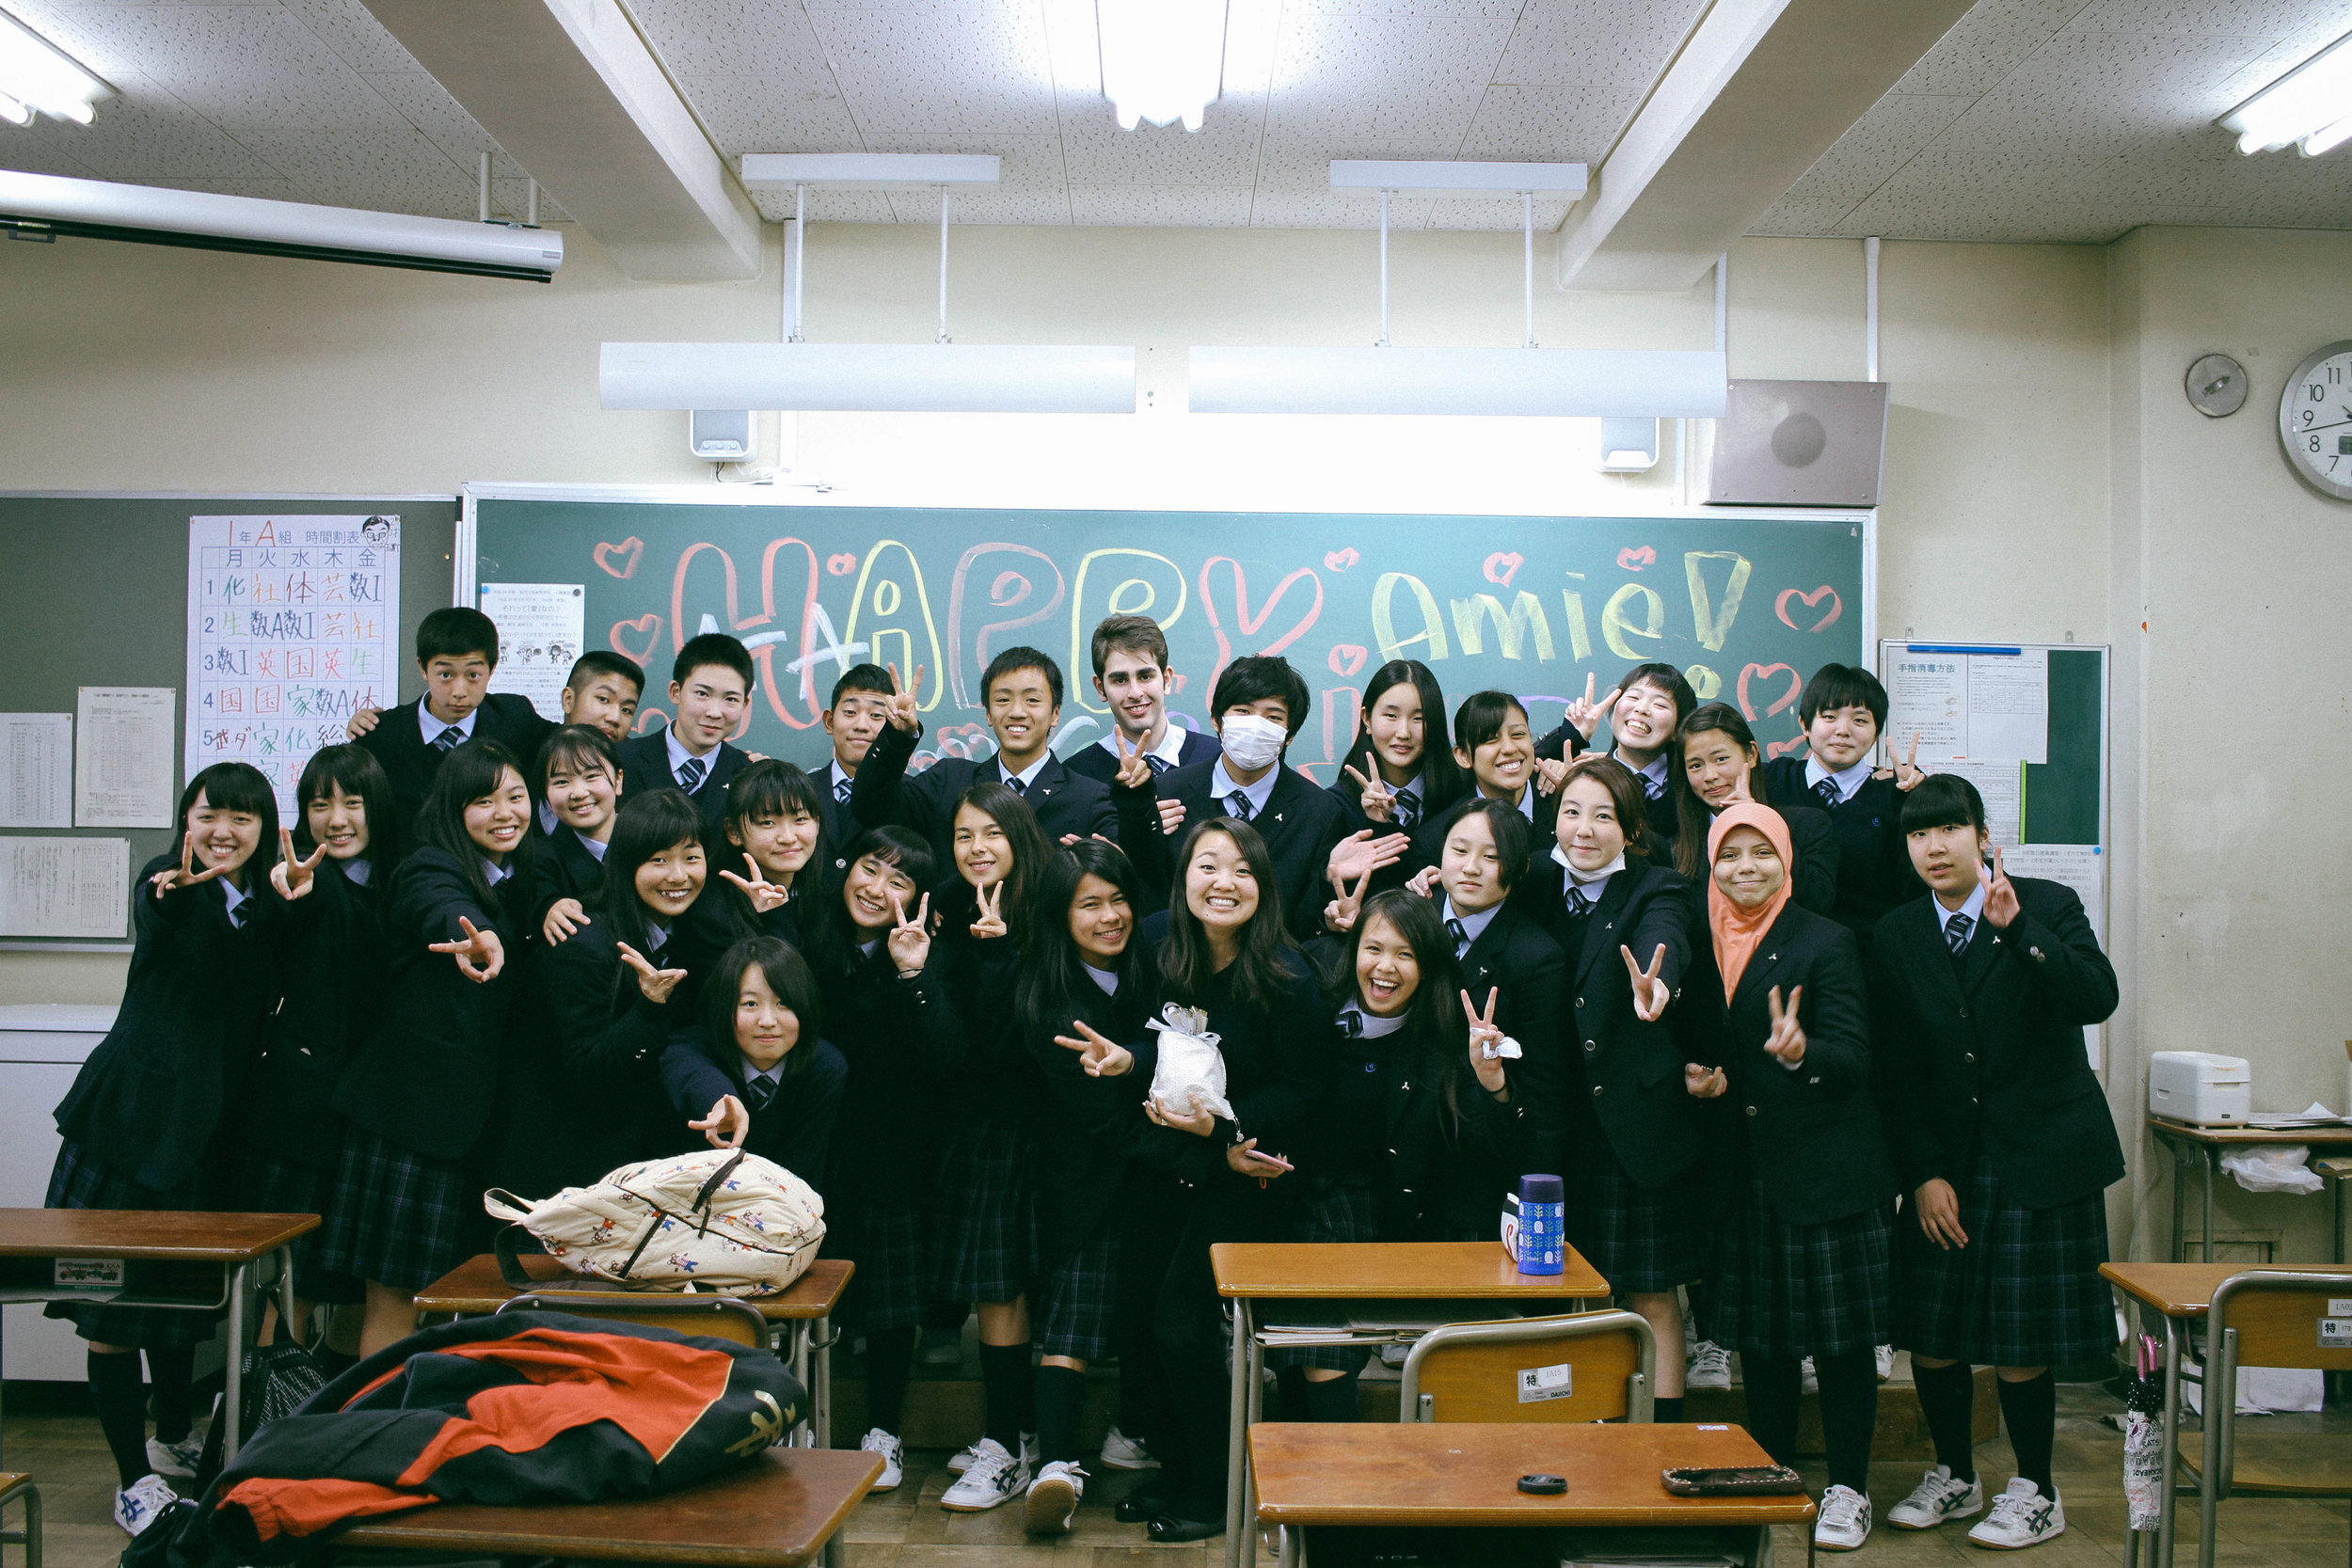 "ICHIKASHI  KASHIWA MUNICIPAL HIGH SCHOOL, KASHIWA, JAPAN  This group of kids...this photo...is truly what this year has been for me. Although I've been on quite a few adventures and had a lot of visitors, my daily grind is at this school and with these beautiful faces. God brought me to Japan to love these kids in His name and that is what I spent 2016 doing. And because of that, it was one of the best years of my life. I am honored to be called ""Amie Sensei"" and I will continue to pursue my purpose here in bringing the gospel of Jesus to this nation."